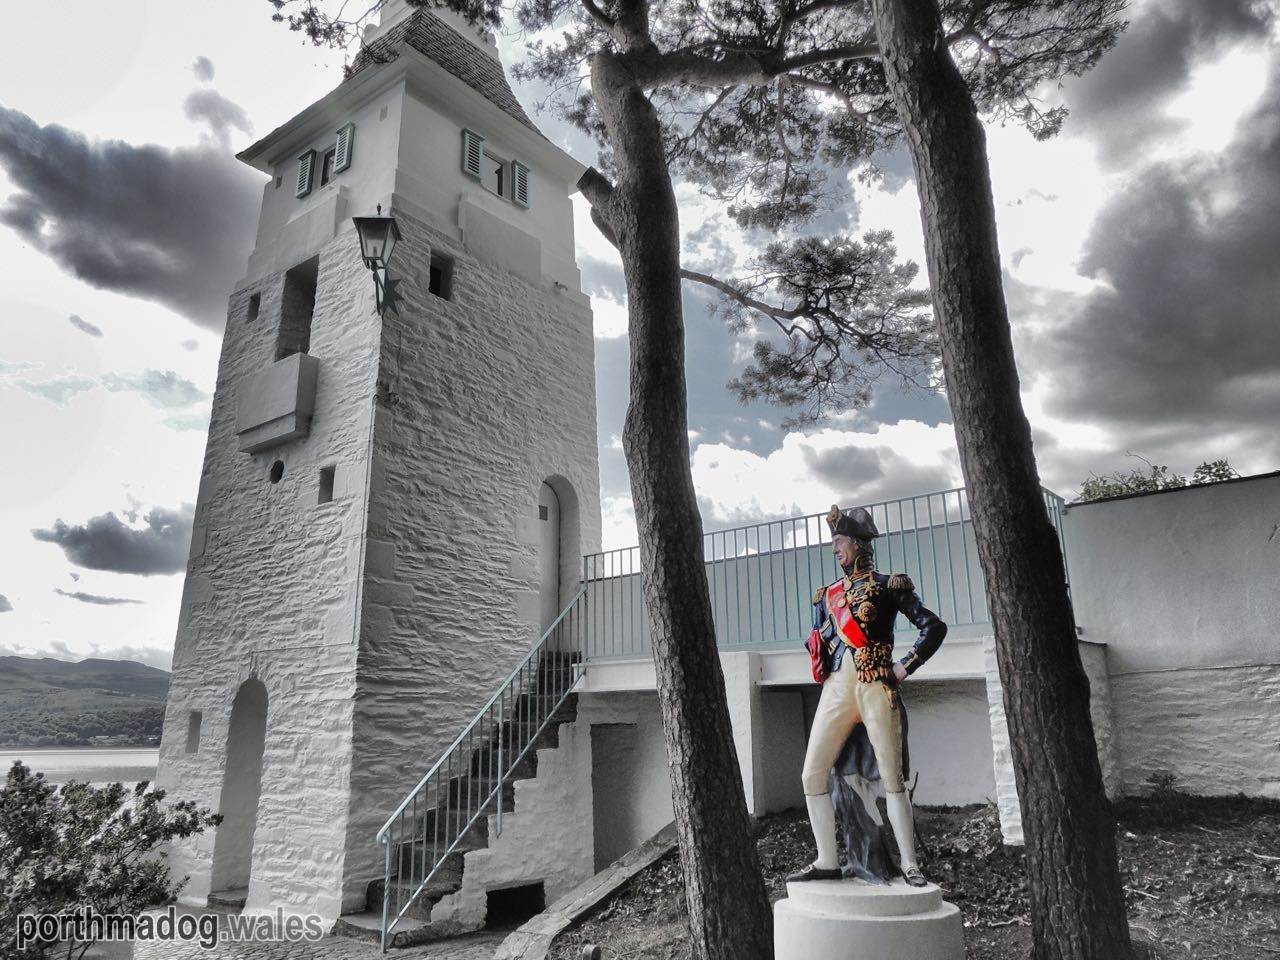 The Statue of Nelson at Portmeirion